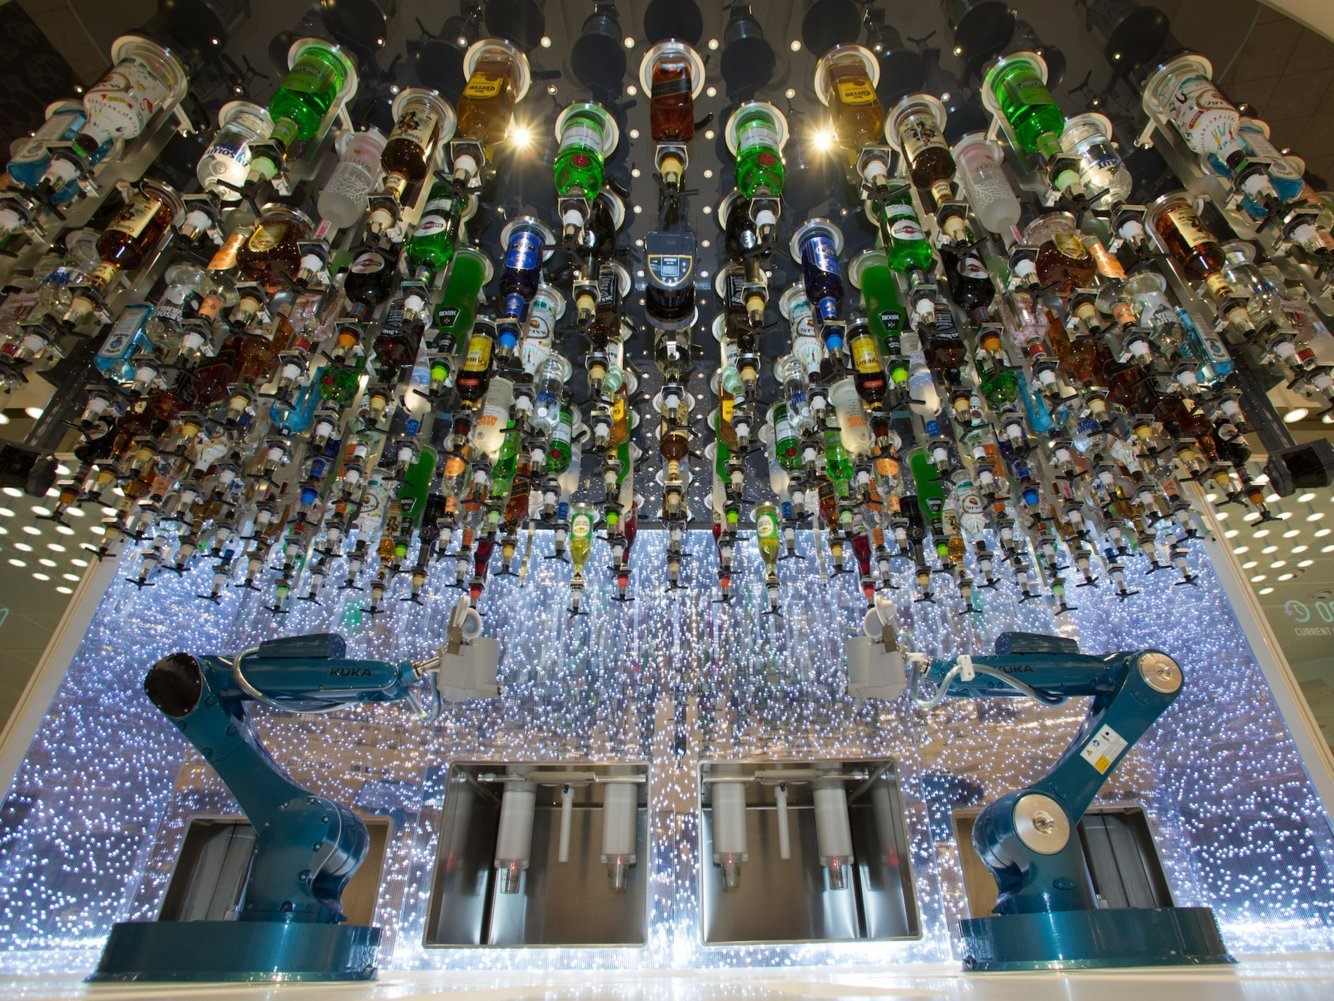 The world's biggest cruise ship has robot bartenders, a water slide with a 92-foot drop, and a nine-story zip-line — here's what it looks like